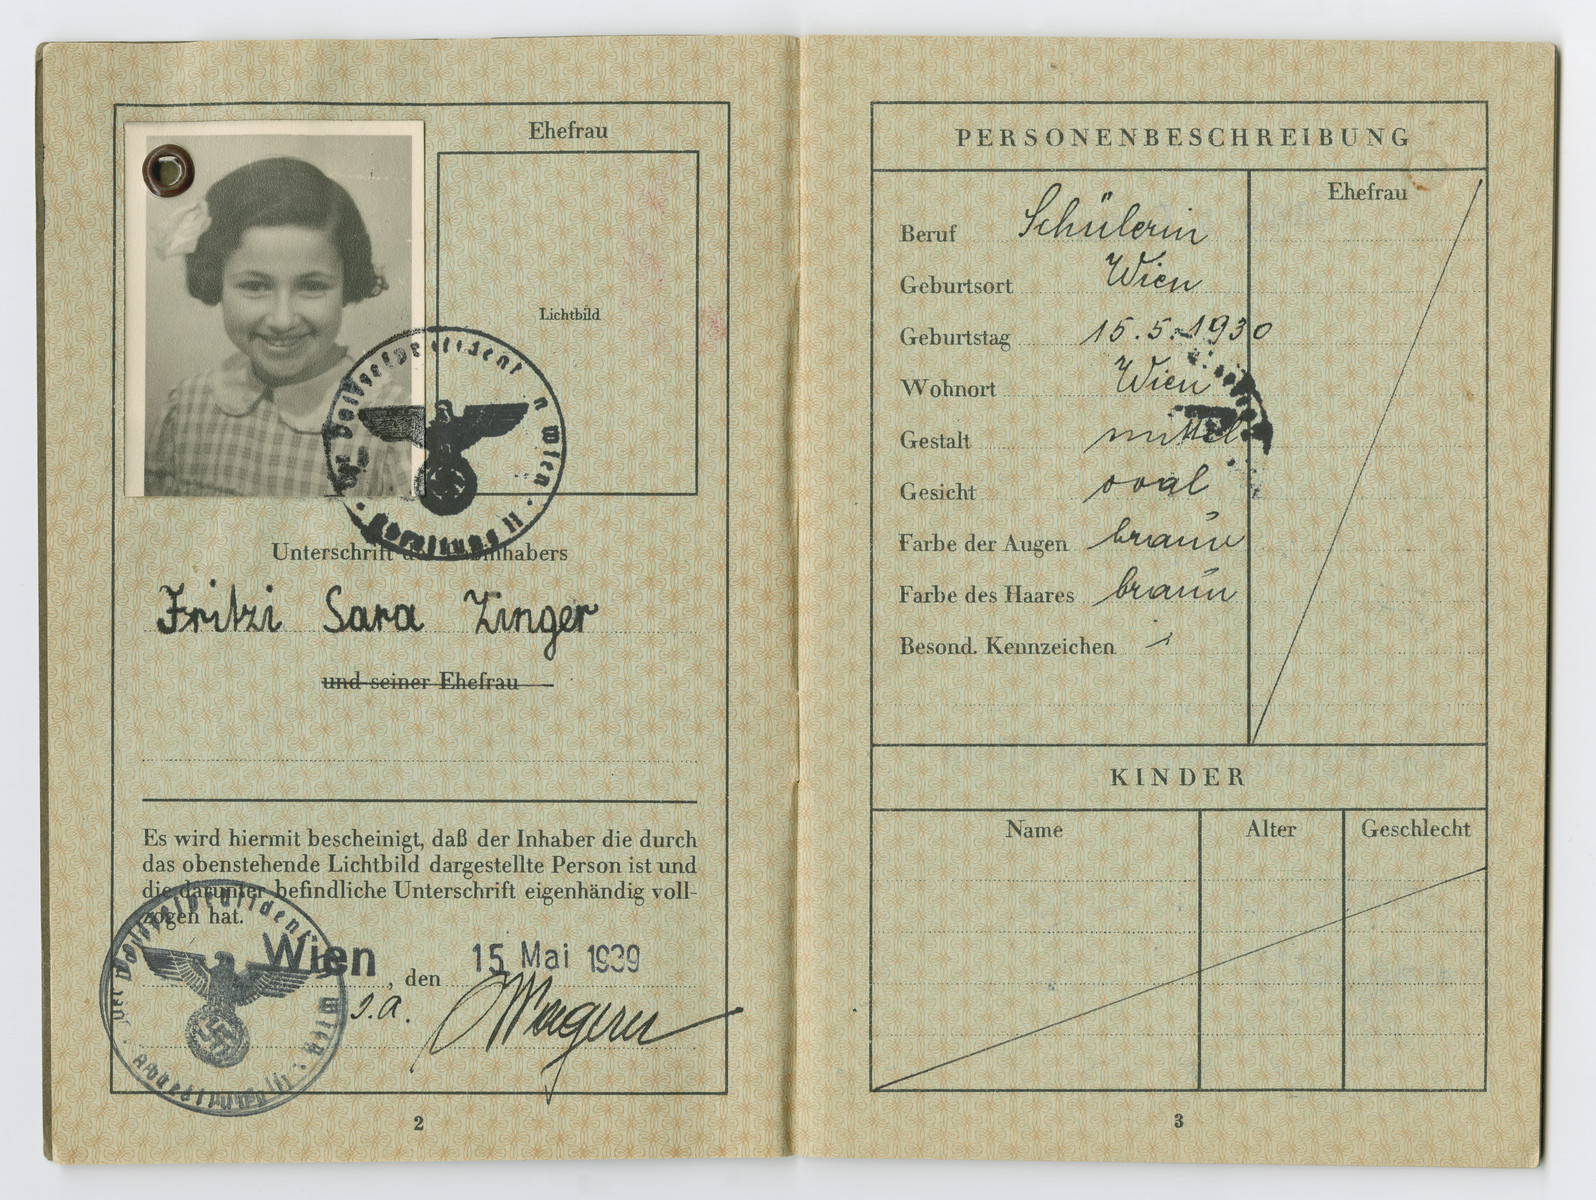 Identification papers issued to Fritzi Sara Zinger stating she was born in Vienna on May 15, 1930.  Sara was not her real middle name, but on August 17, 1938 Nazi officials ordered that all Jewish men assume the middle name Israel, and all Jewish women take the middle name Sara